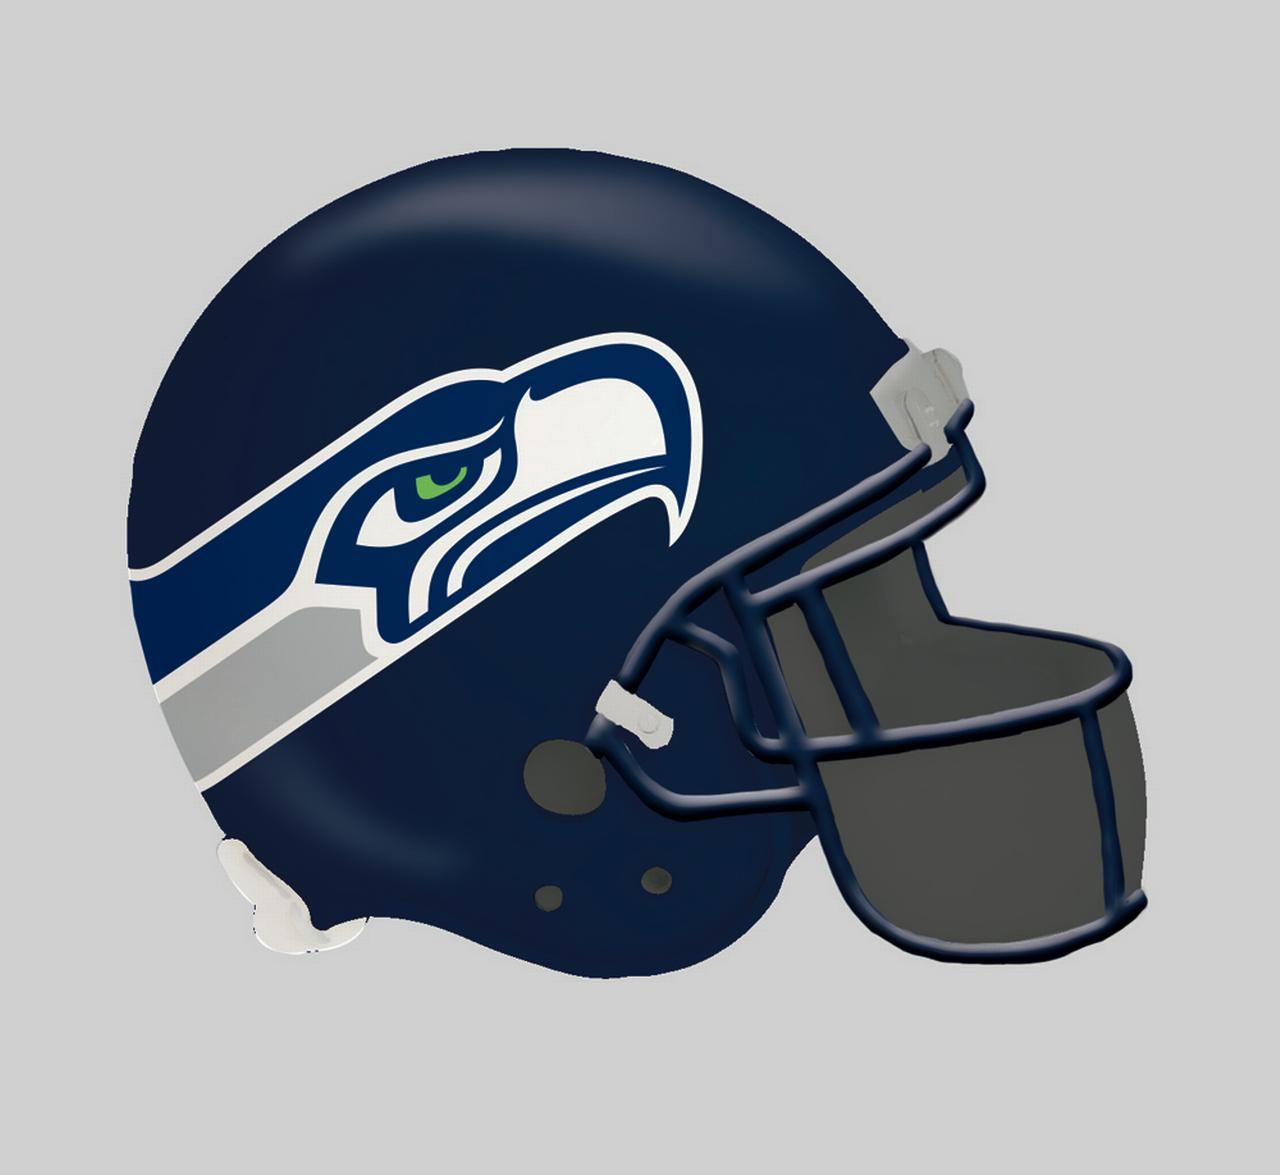 Seattle seahawks helmet 2002 11 pro line login for sale price pictures